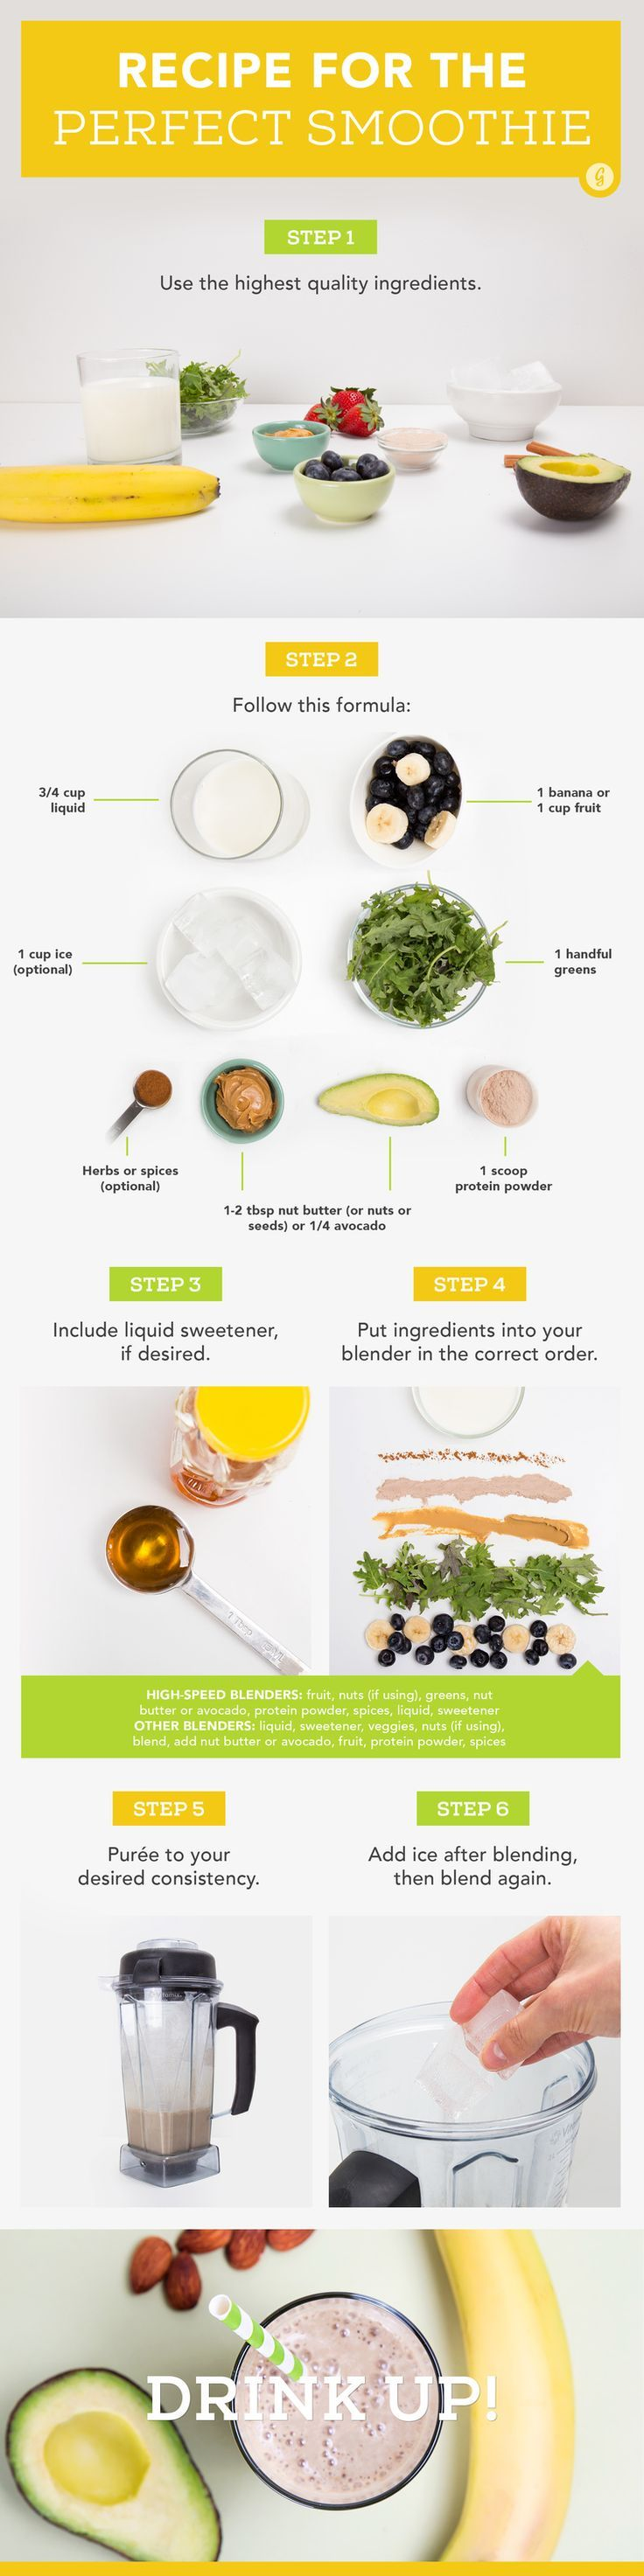 Your quick guide to making the perfect smoothie! #healthy #smoothie #tip